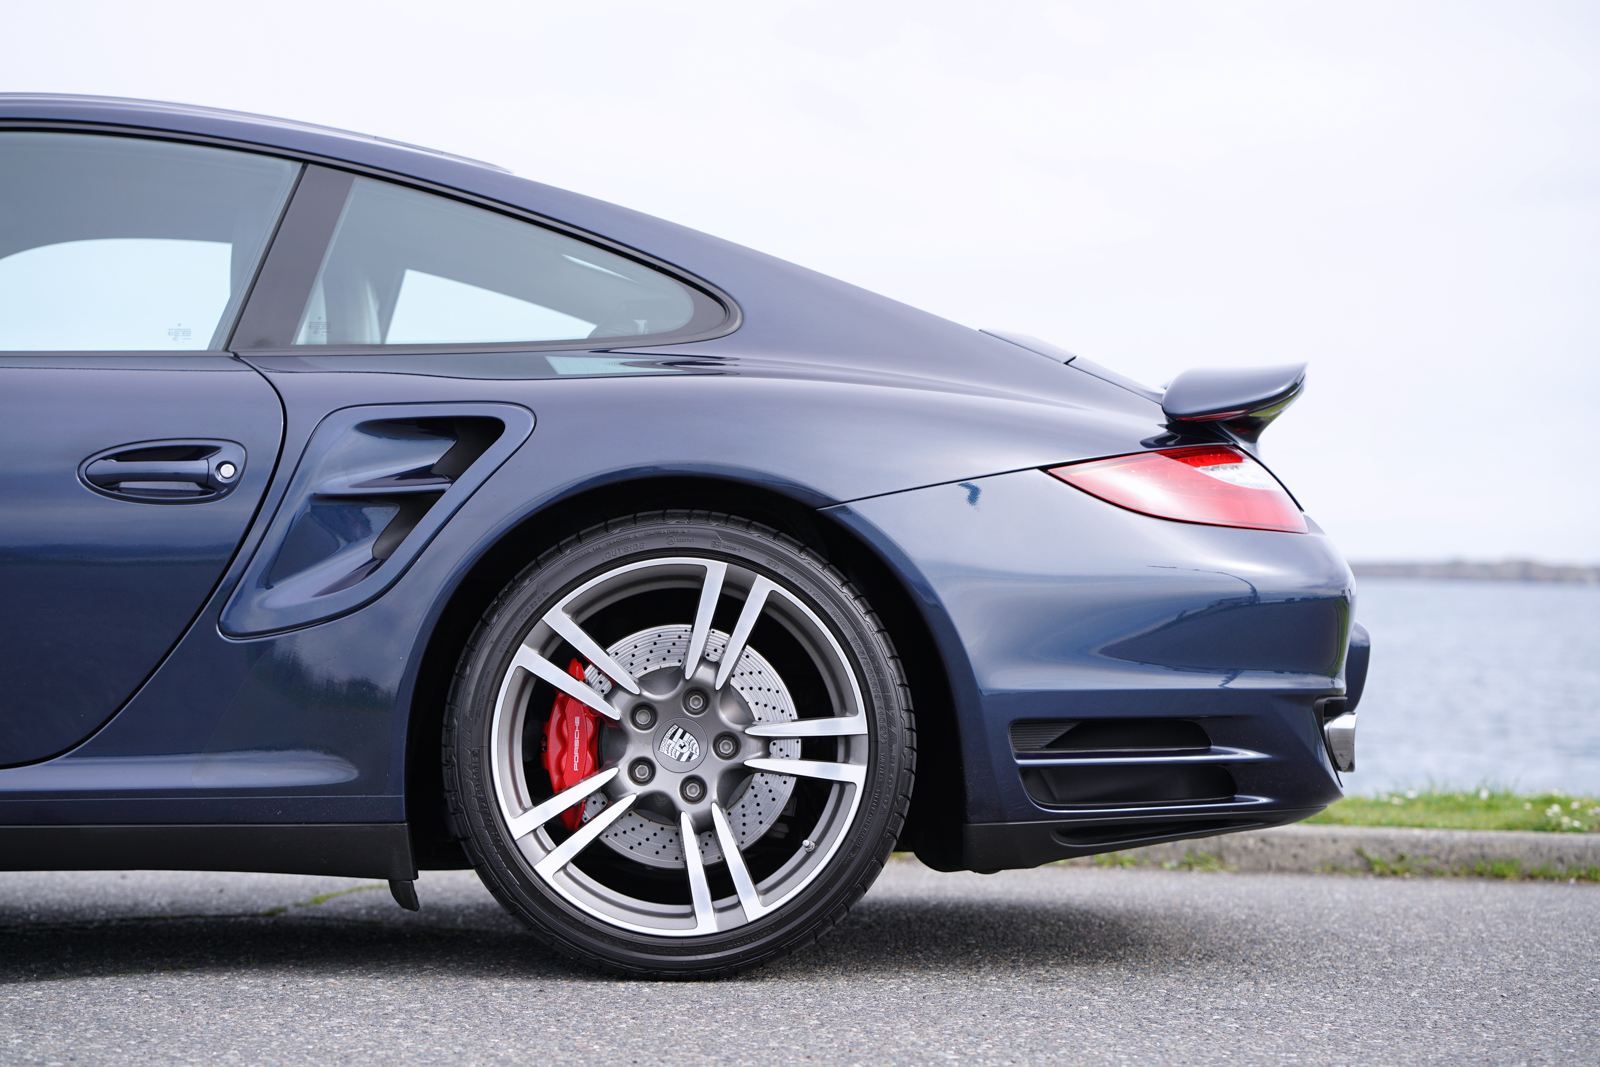 2010 Porsche 911 Turbo (997) for sale